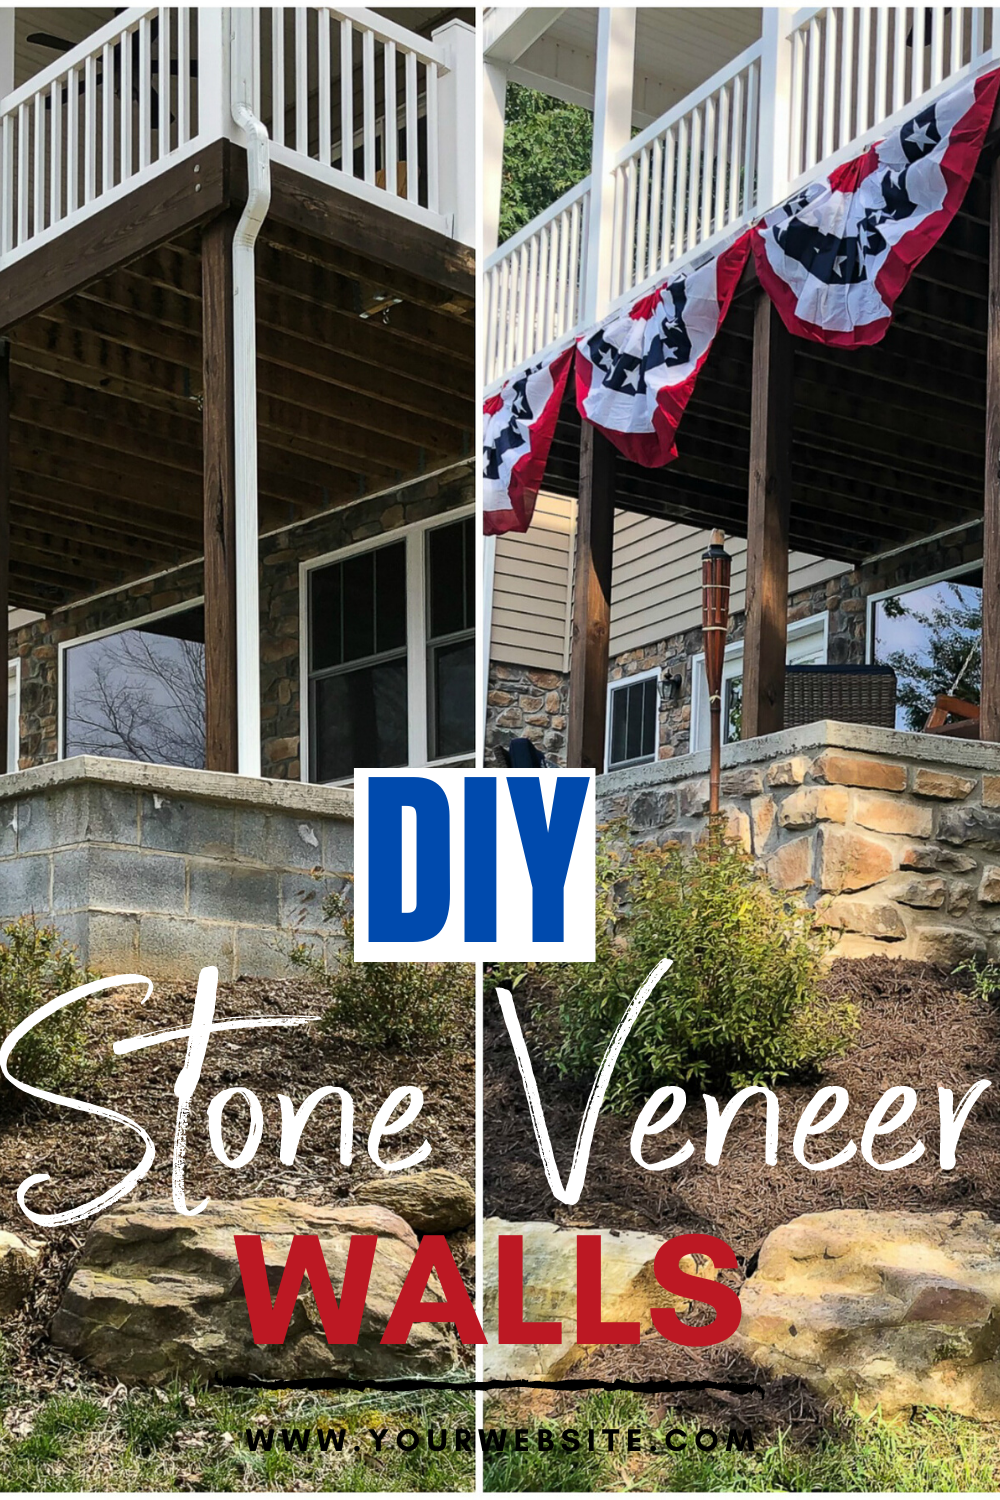 DIY Stone Veneer Walls - Up curb appeal by adding stone veneer to patio walls.  Learn how to DIY this project!  #stoneveneer #diystoneveneer via @spaula